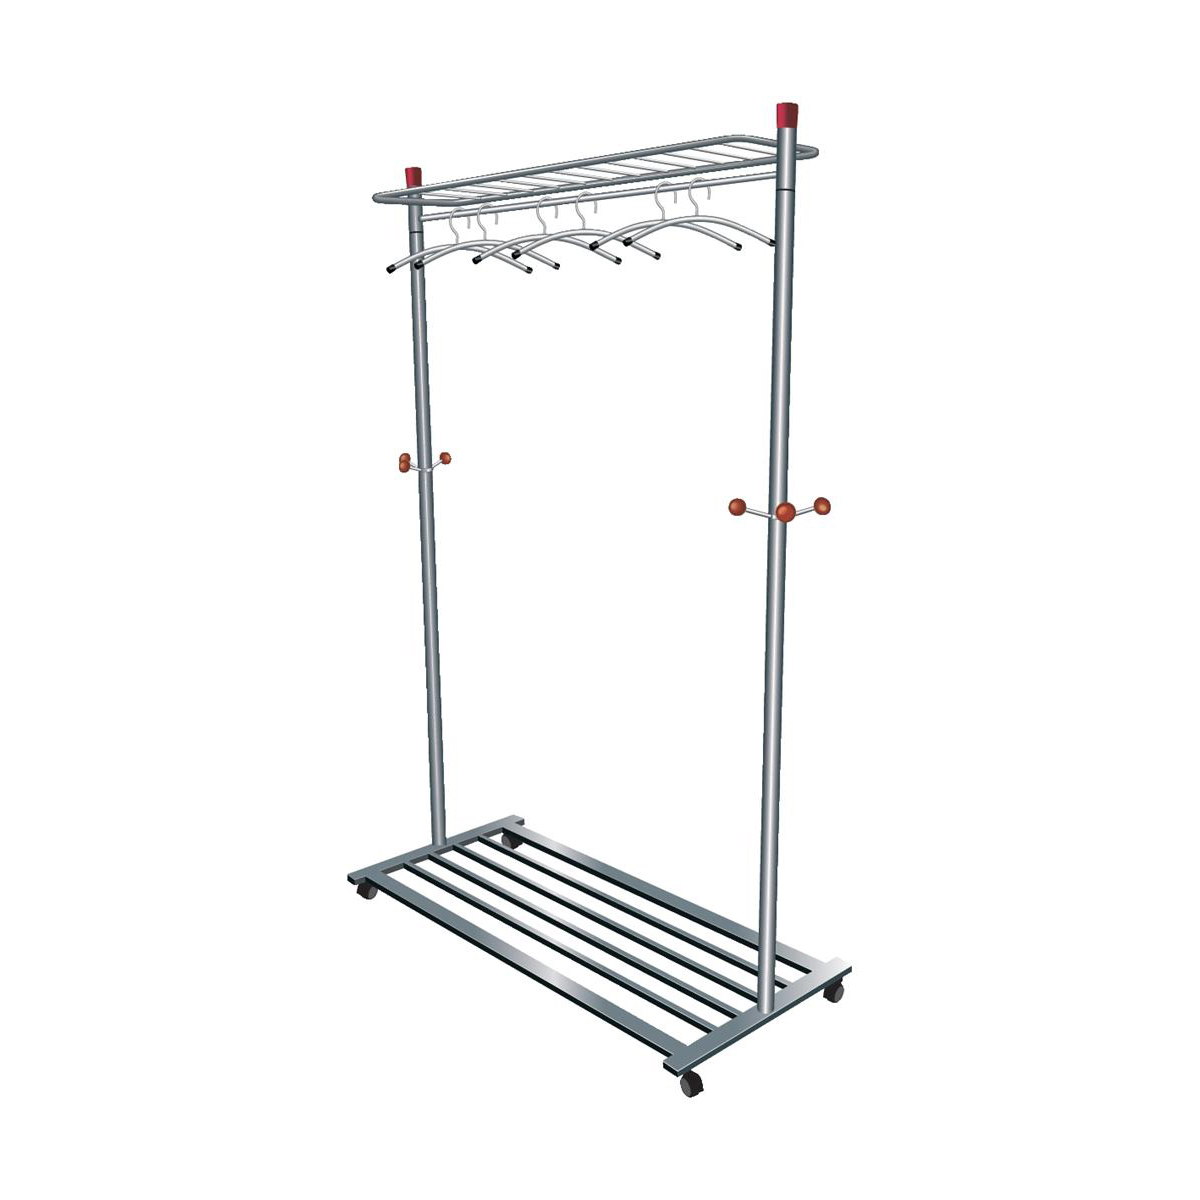 Image for 5 Star Facilities Coat Rack Mobile 4 Wheels 3 Pegs Capacity 40-50 Hangers 1270x555x1790mm Silver